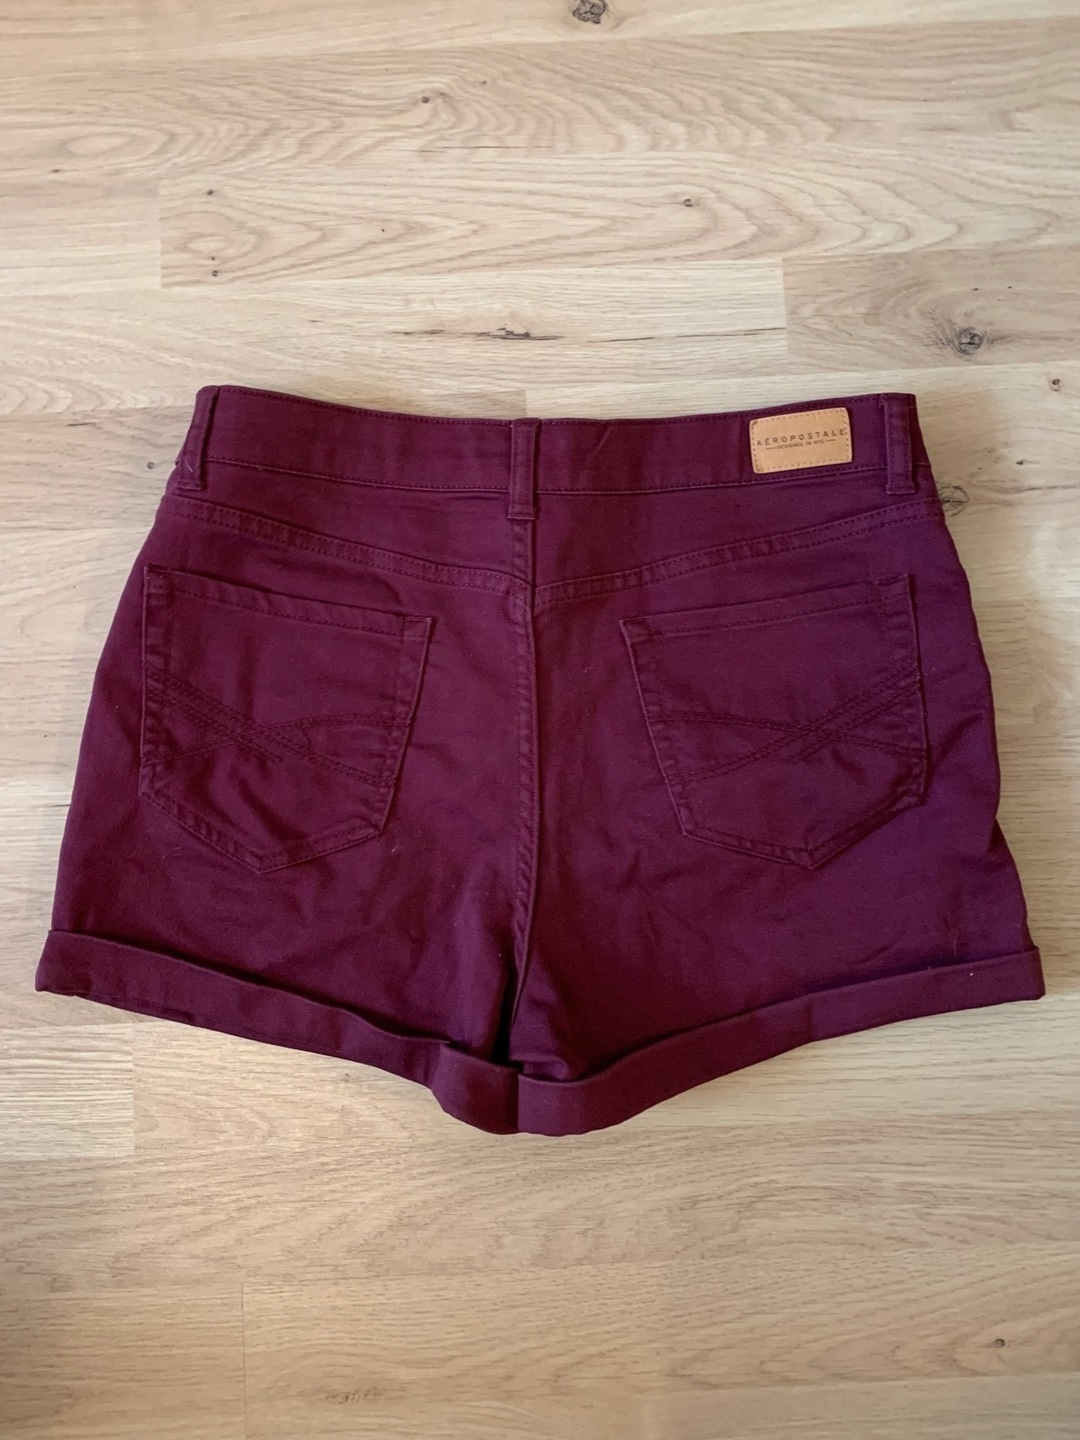 Women's shorts - AEROPOSTALE photo 2